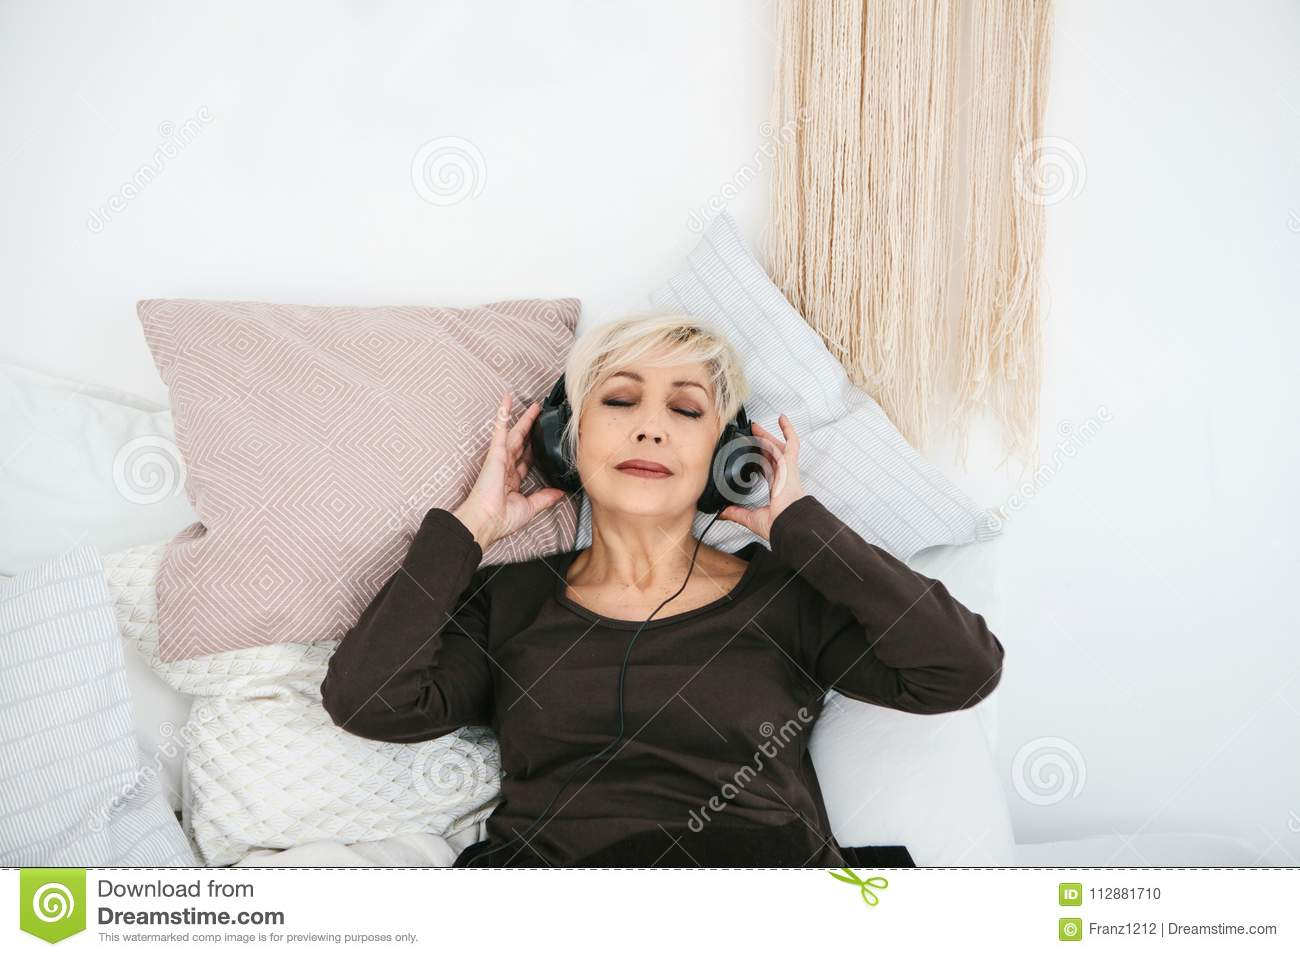 Positive elderly woman listening to music. The older generation and new technologies.